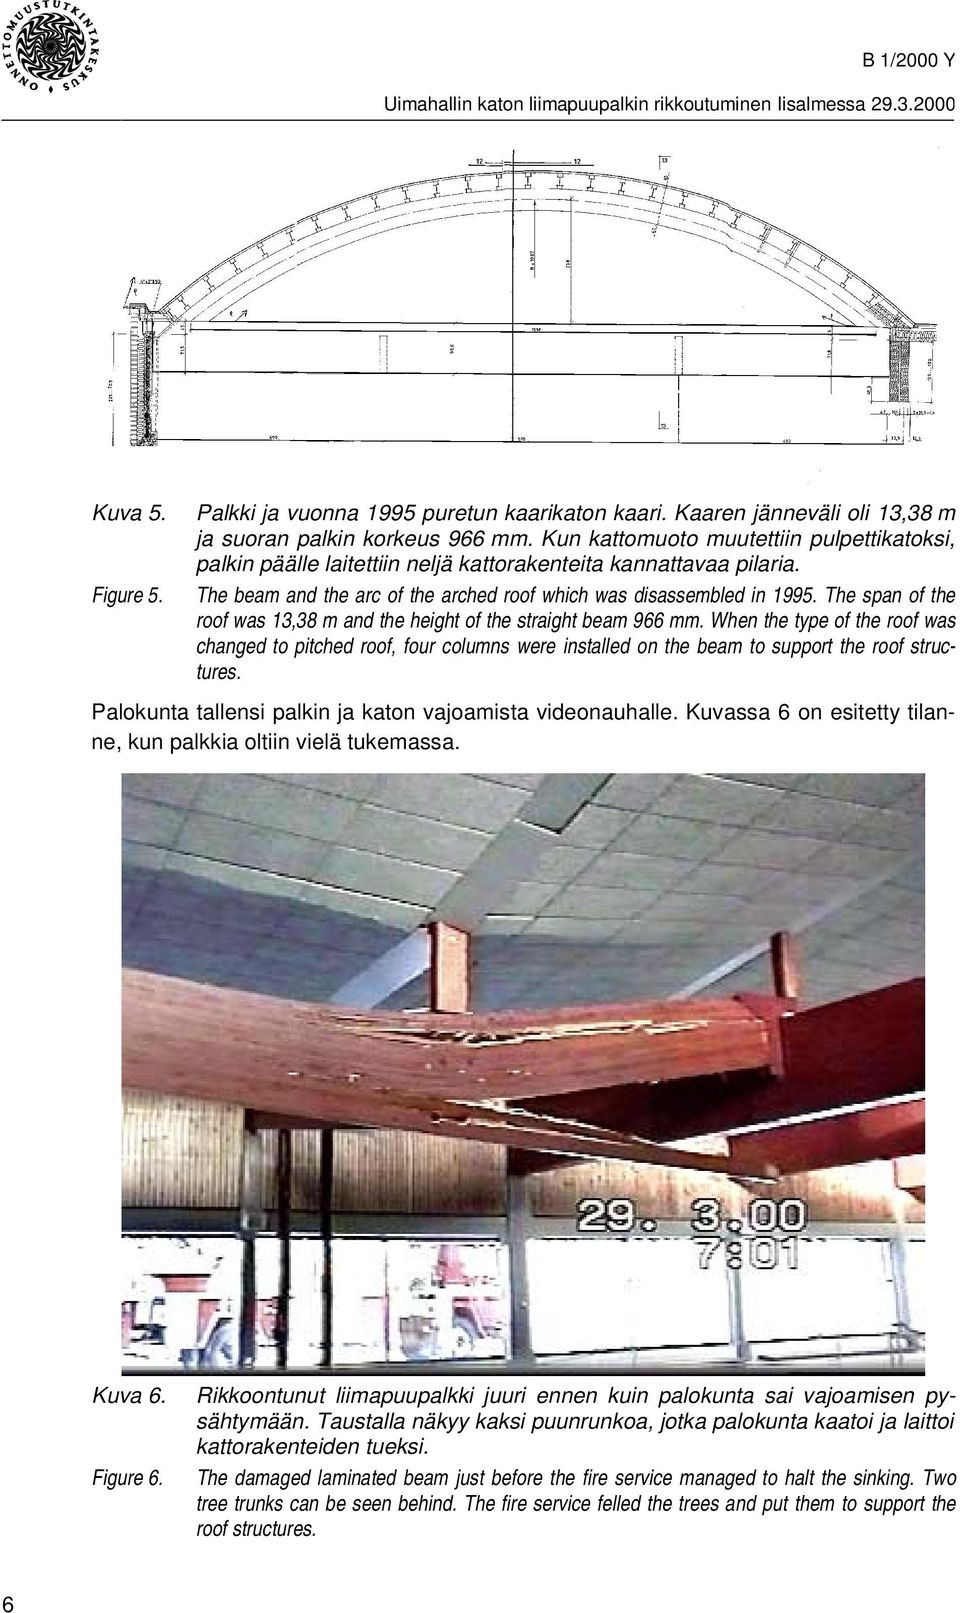 The span of the roof was 13,38 m and the height of the straight beam 966 mm.